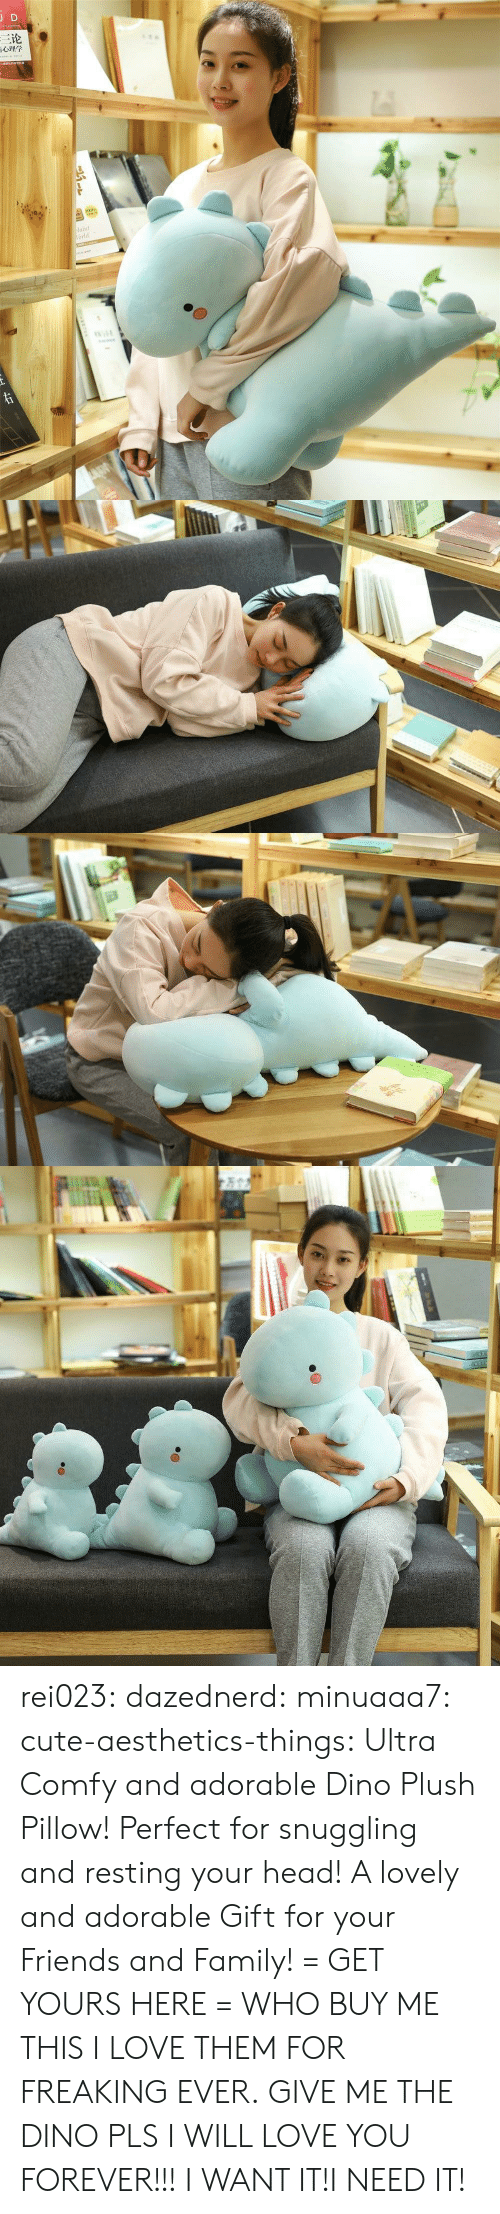 Cute, Family, and Friends: JD  三论  laint  orld  TNAR  ww.e rei023: dazednerd:  minuaaa7:   cute-aesthetics-things:  Ultra Comfy and adorable Dino Plush Pillow! Perfect for snuggling and resting your head! A lovely and adorable Gift for your Friends and Family! = GET YOURS HERE =  WHO BUY ME THIS I LOVE THEM FOR FREAKING EVER.   GIVE ME THE DINO PLS I WILL LOVE YOU FOREVER!!!  I WANT IT!I NEED IT!